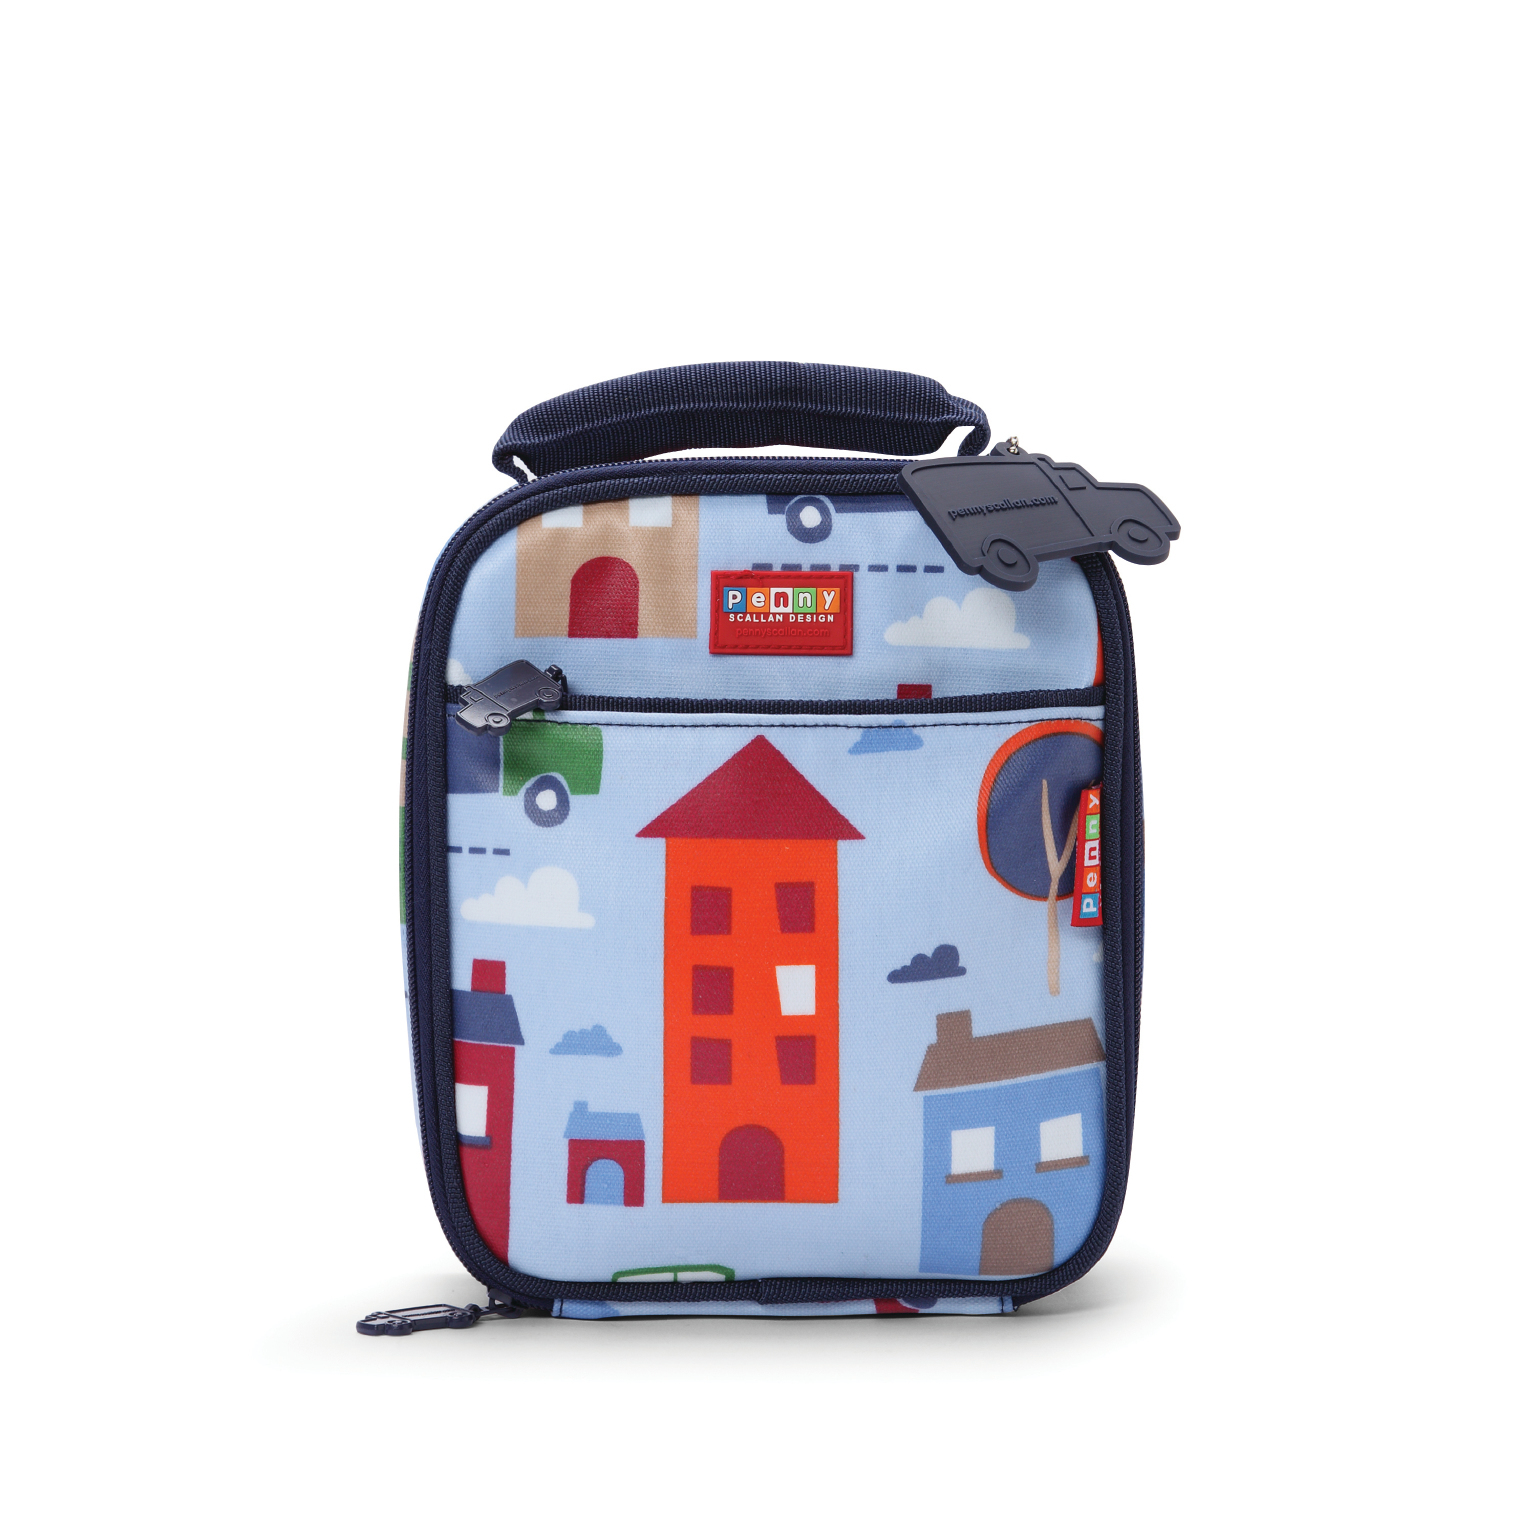 Big City School Lunchbox image